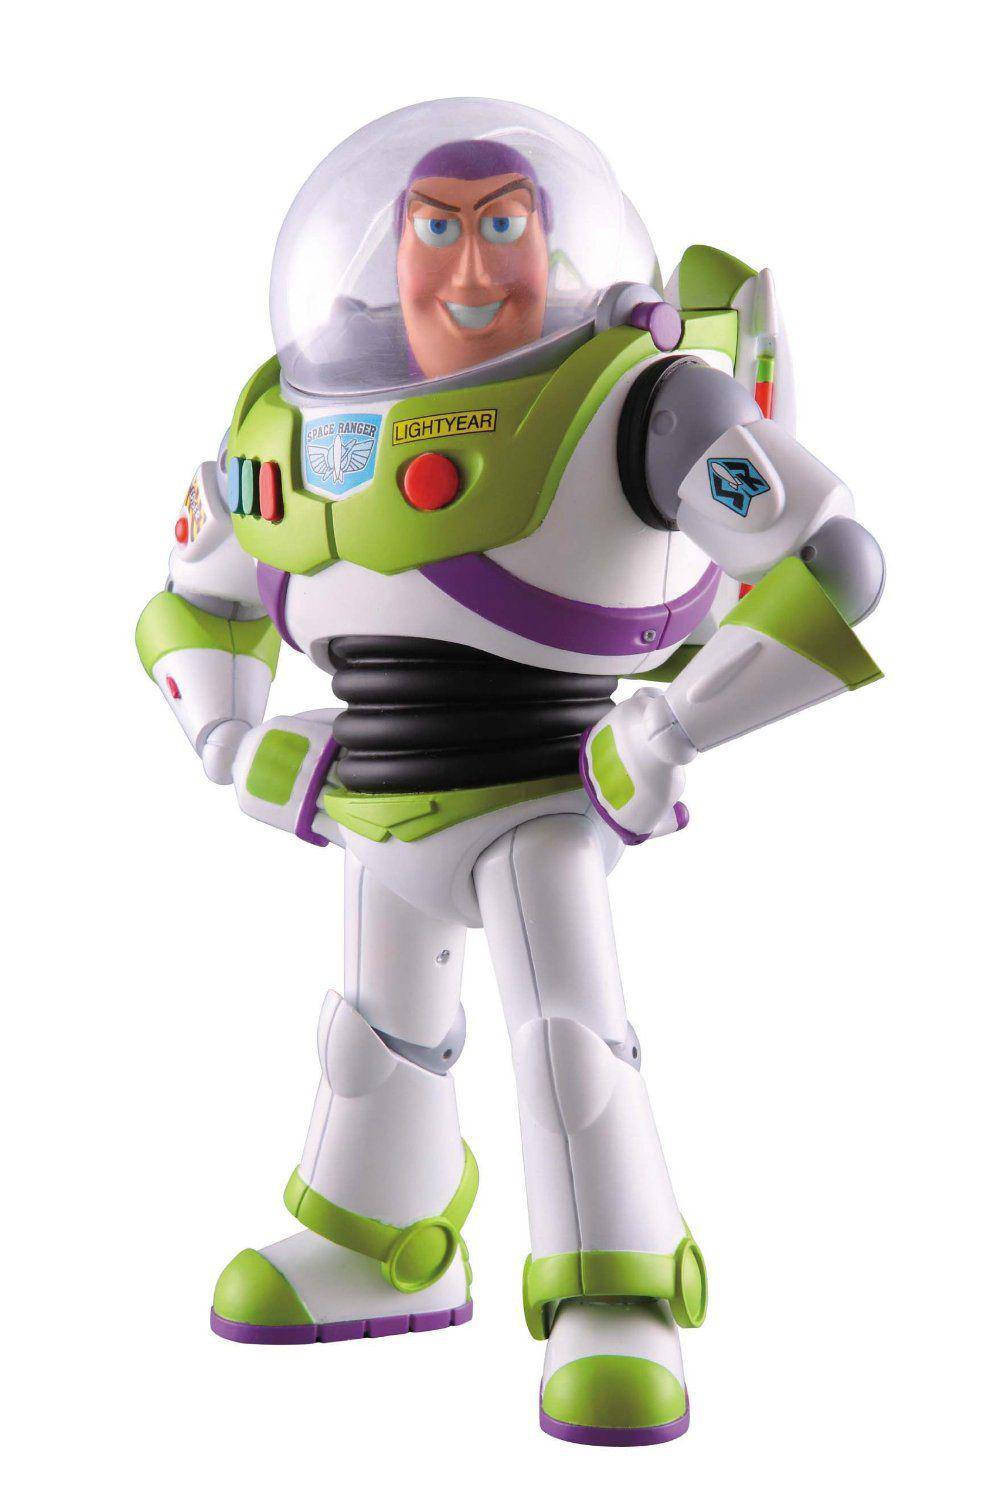 Contemporary By Medicom Toy Medicom Toy Toy Story Buzz Lightyear Version Vinyl Collectable Toy Story Buzz Lightyear 1995 Toy Story Buzz Lightyear Costume inspiration Toy Story Buzz Lightyear